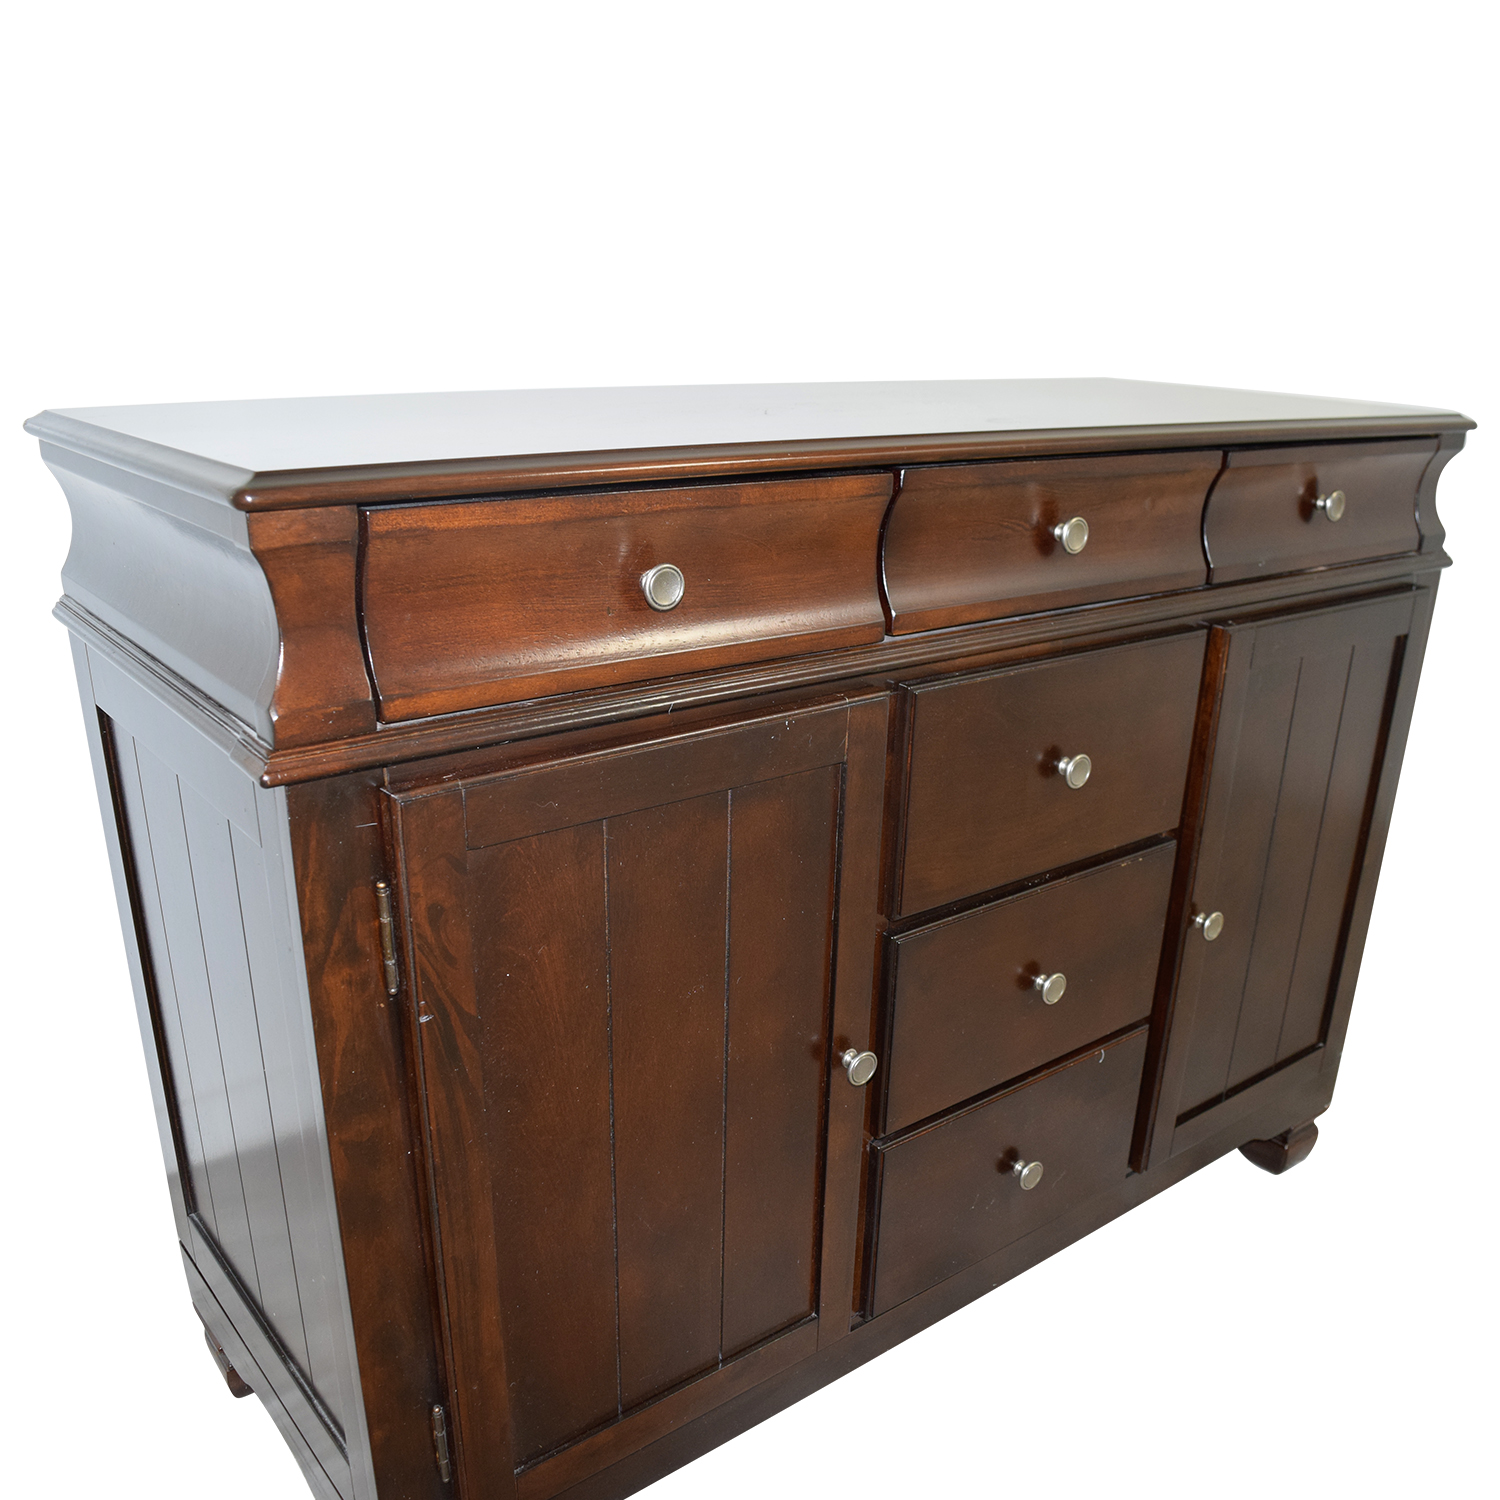 Hayley Hayley Wood Dining Room Buffet Cabinets & Sideboards